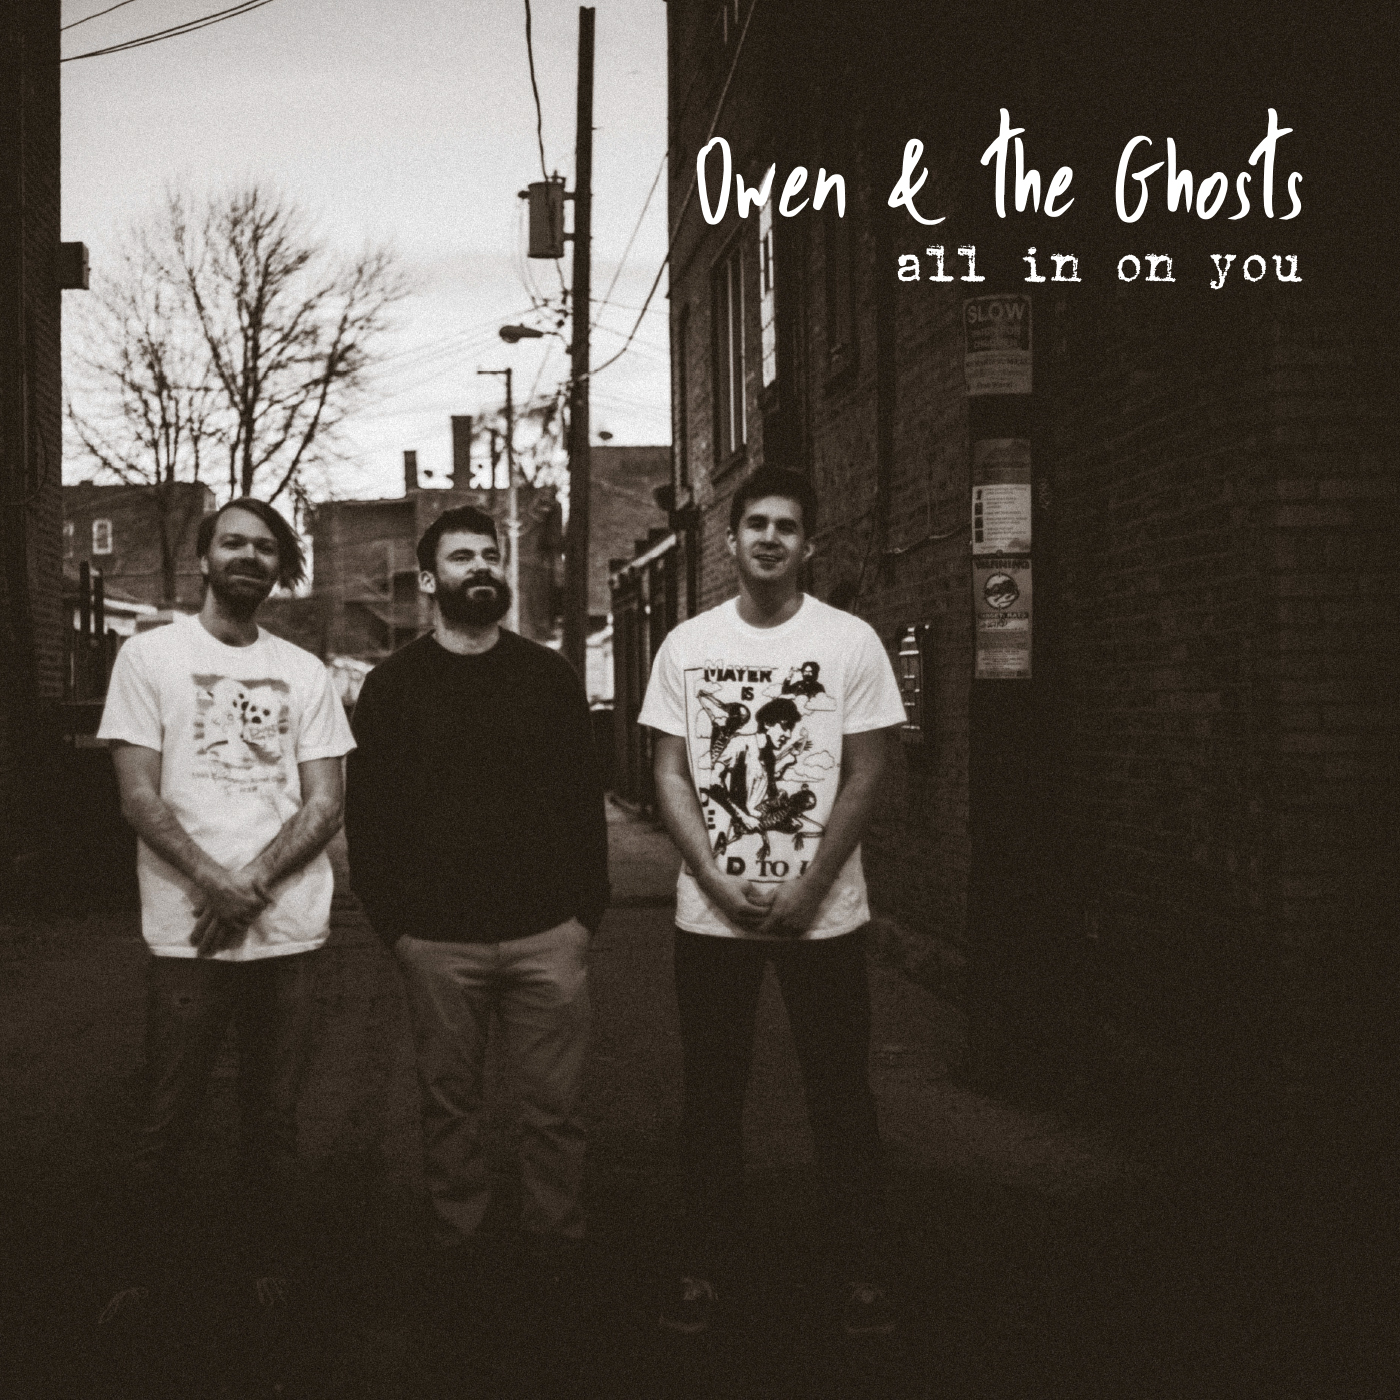 Owen And The Ghosts' official EP available now on iTunes and Spotify.